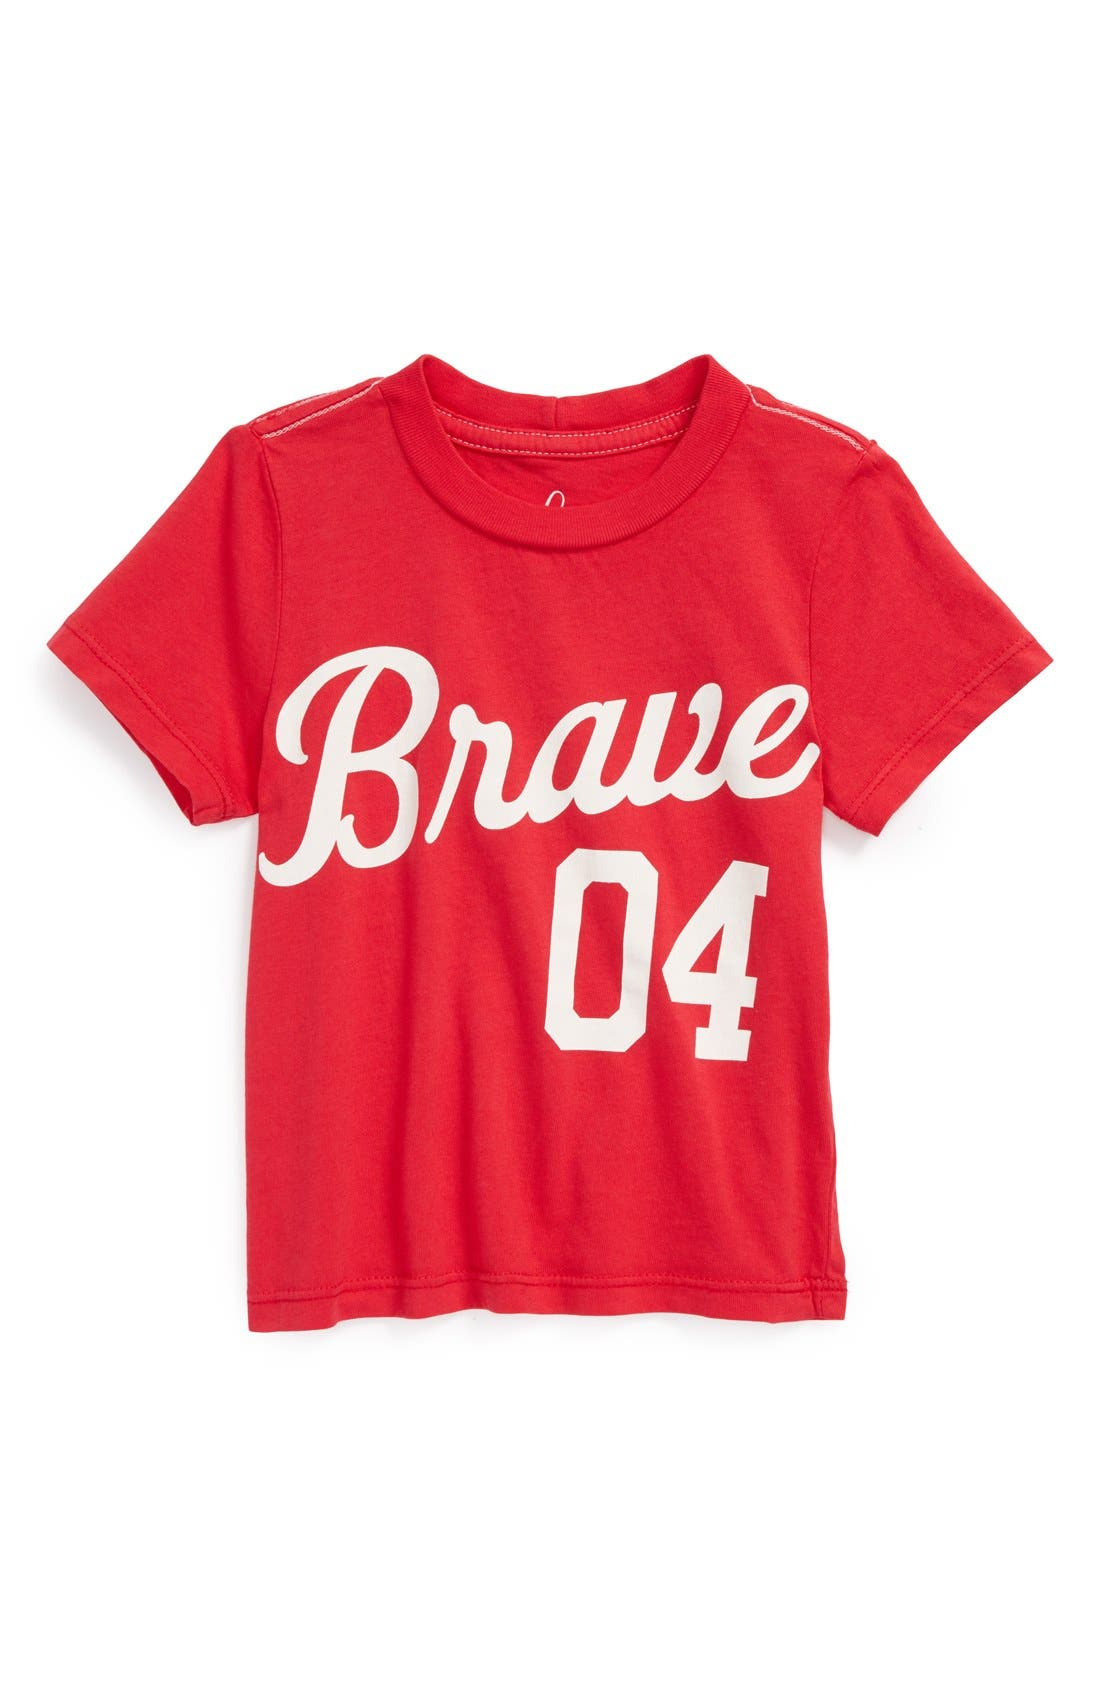 Main Image - Peek 'Brave' T-Shirt (Baby Boys)